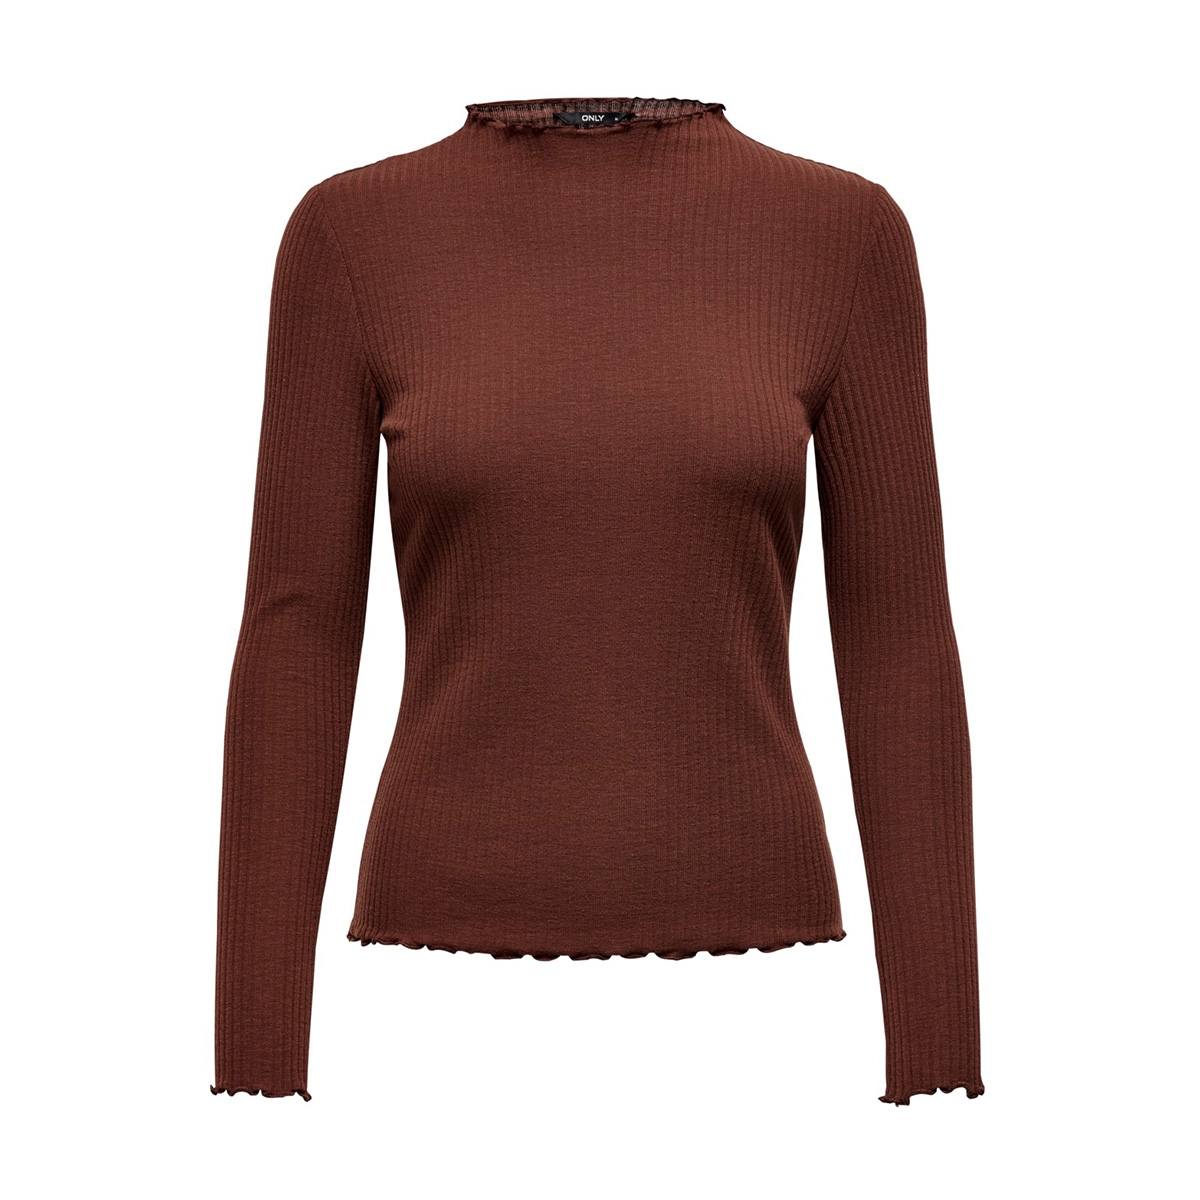 onlemma l/s high neck top noos jrs 15180040 only t-shirt cherry mahogany